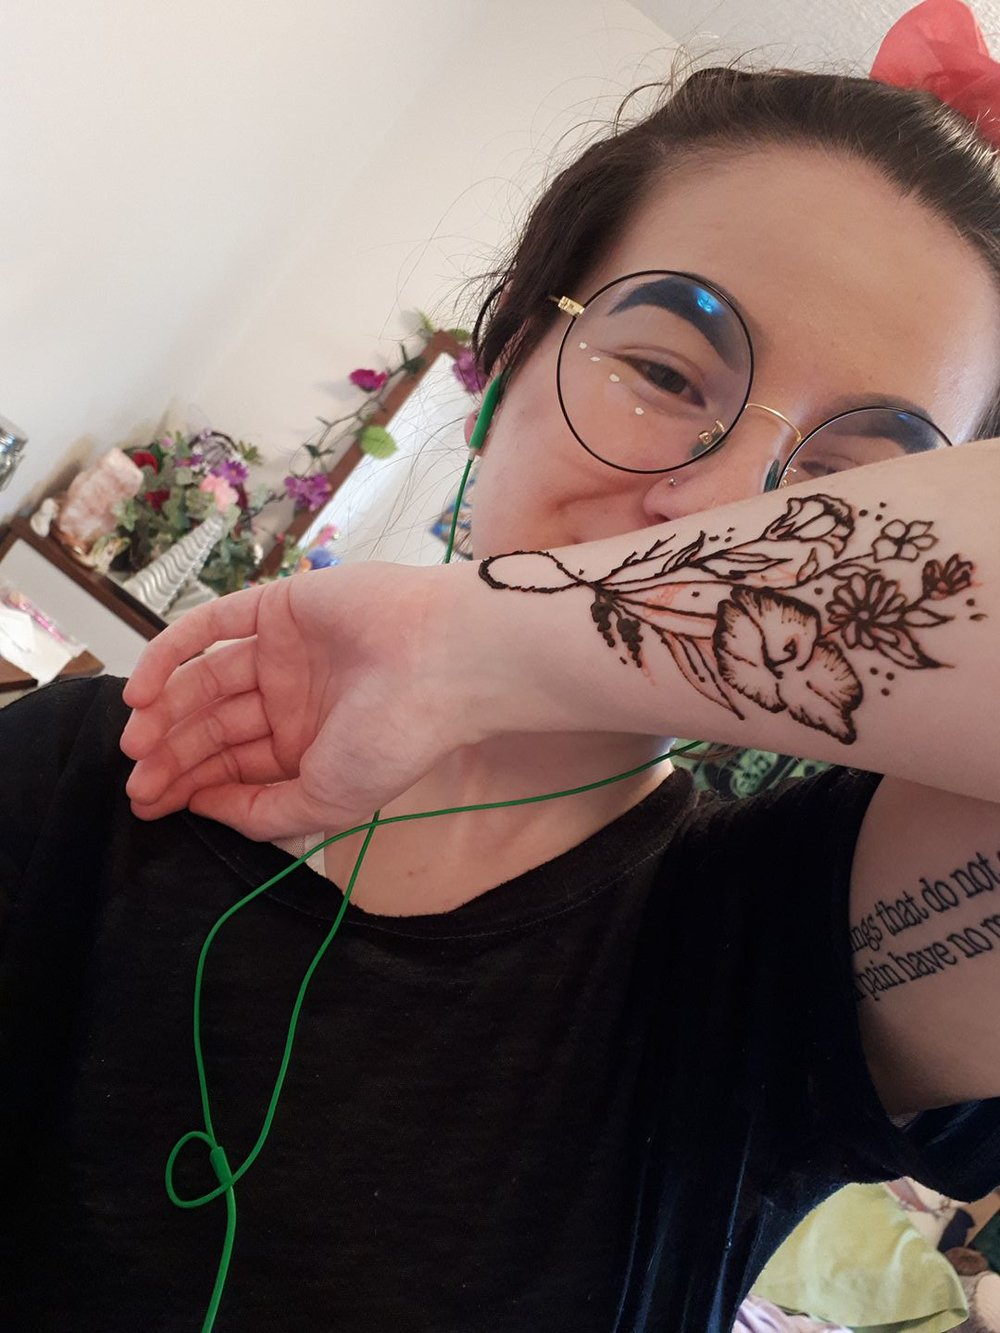 Tavia Latta Henna - Lahari's very own Tavia will be providing her temporary henna tattoo services at the event! She offers henna in studio paired with some of her classes so check out the studio class schedule as well as her Instagram @mehndi_tavi for inspiration on what adornment you might want.